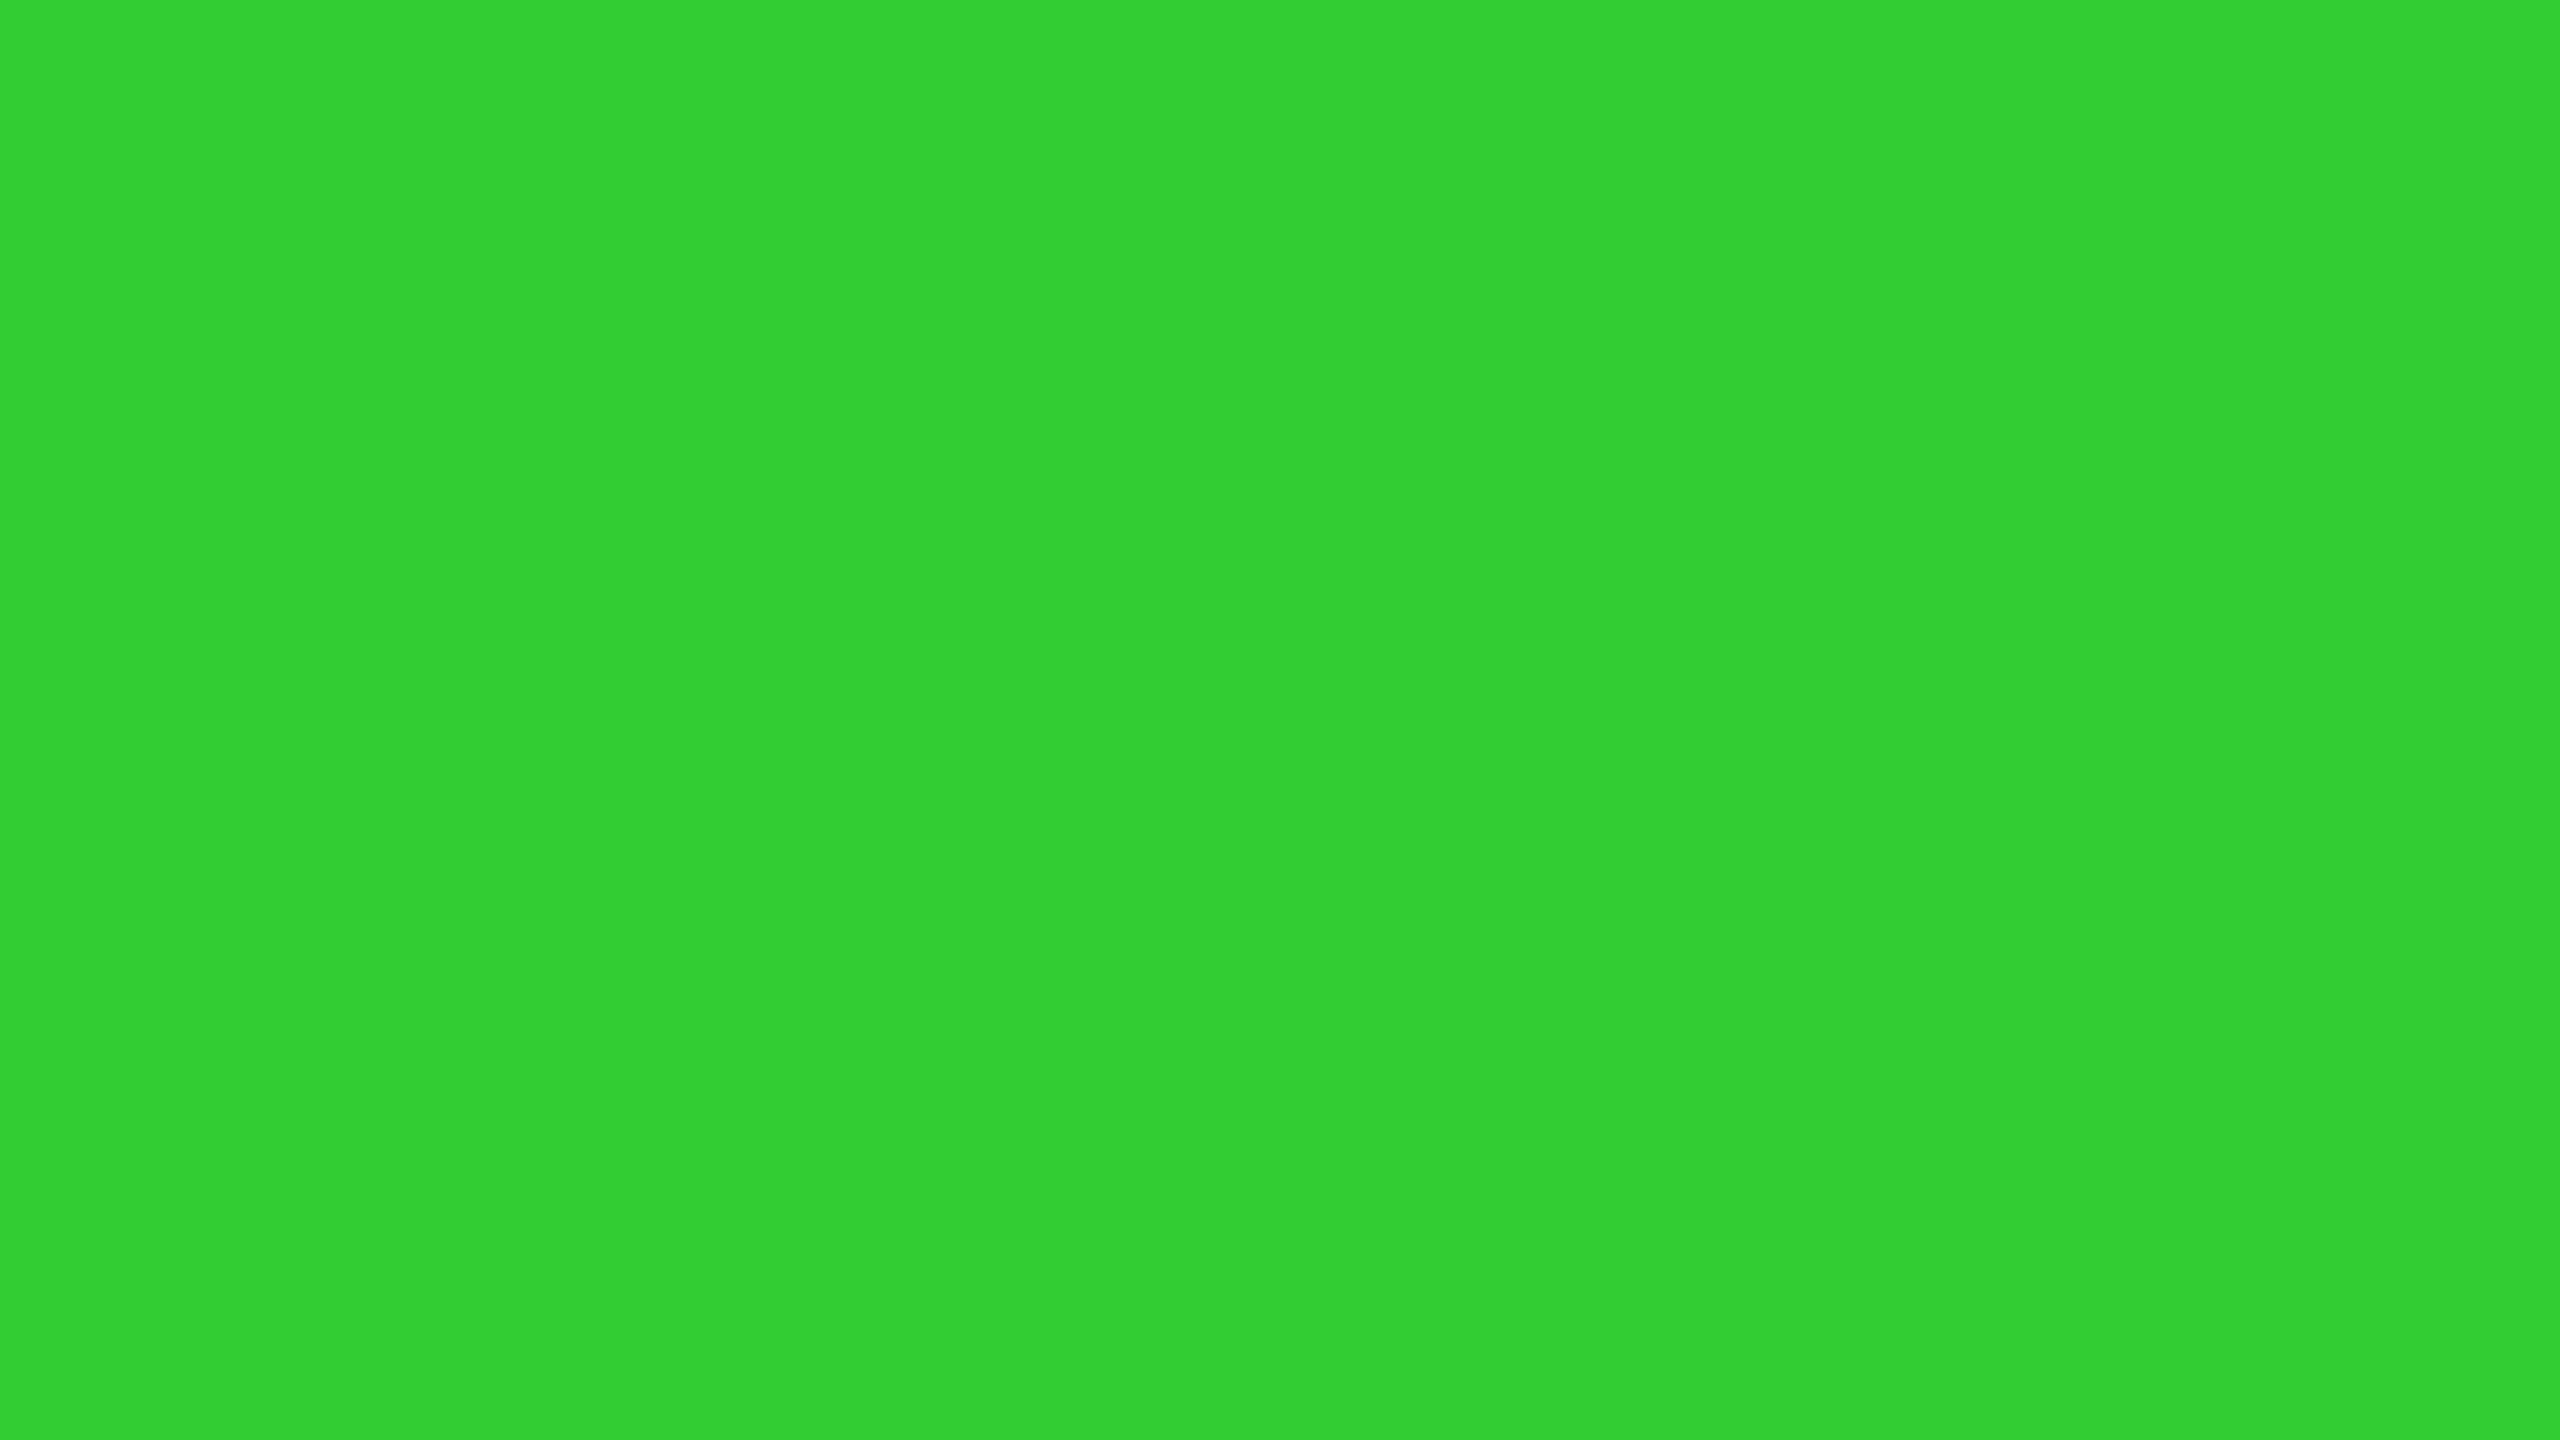 Lime Green Backgrounds (55+ pictures)